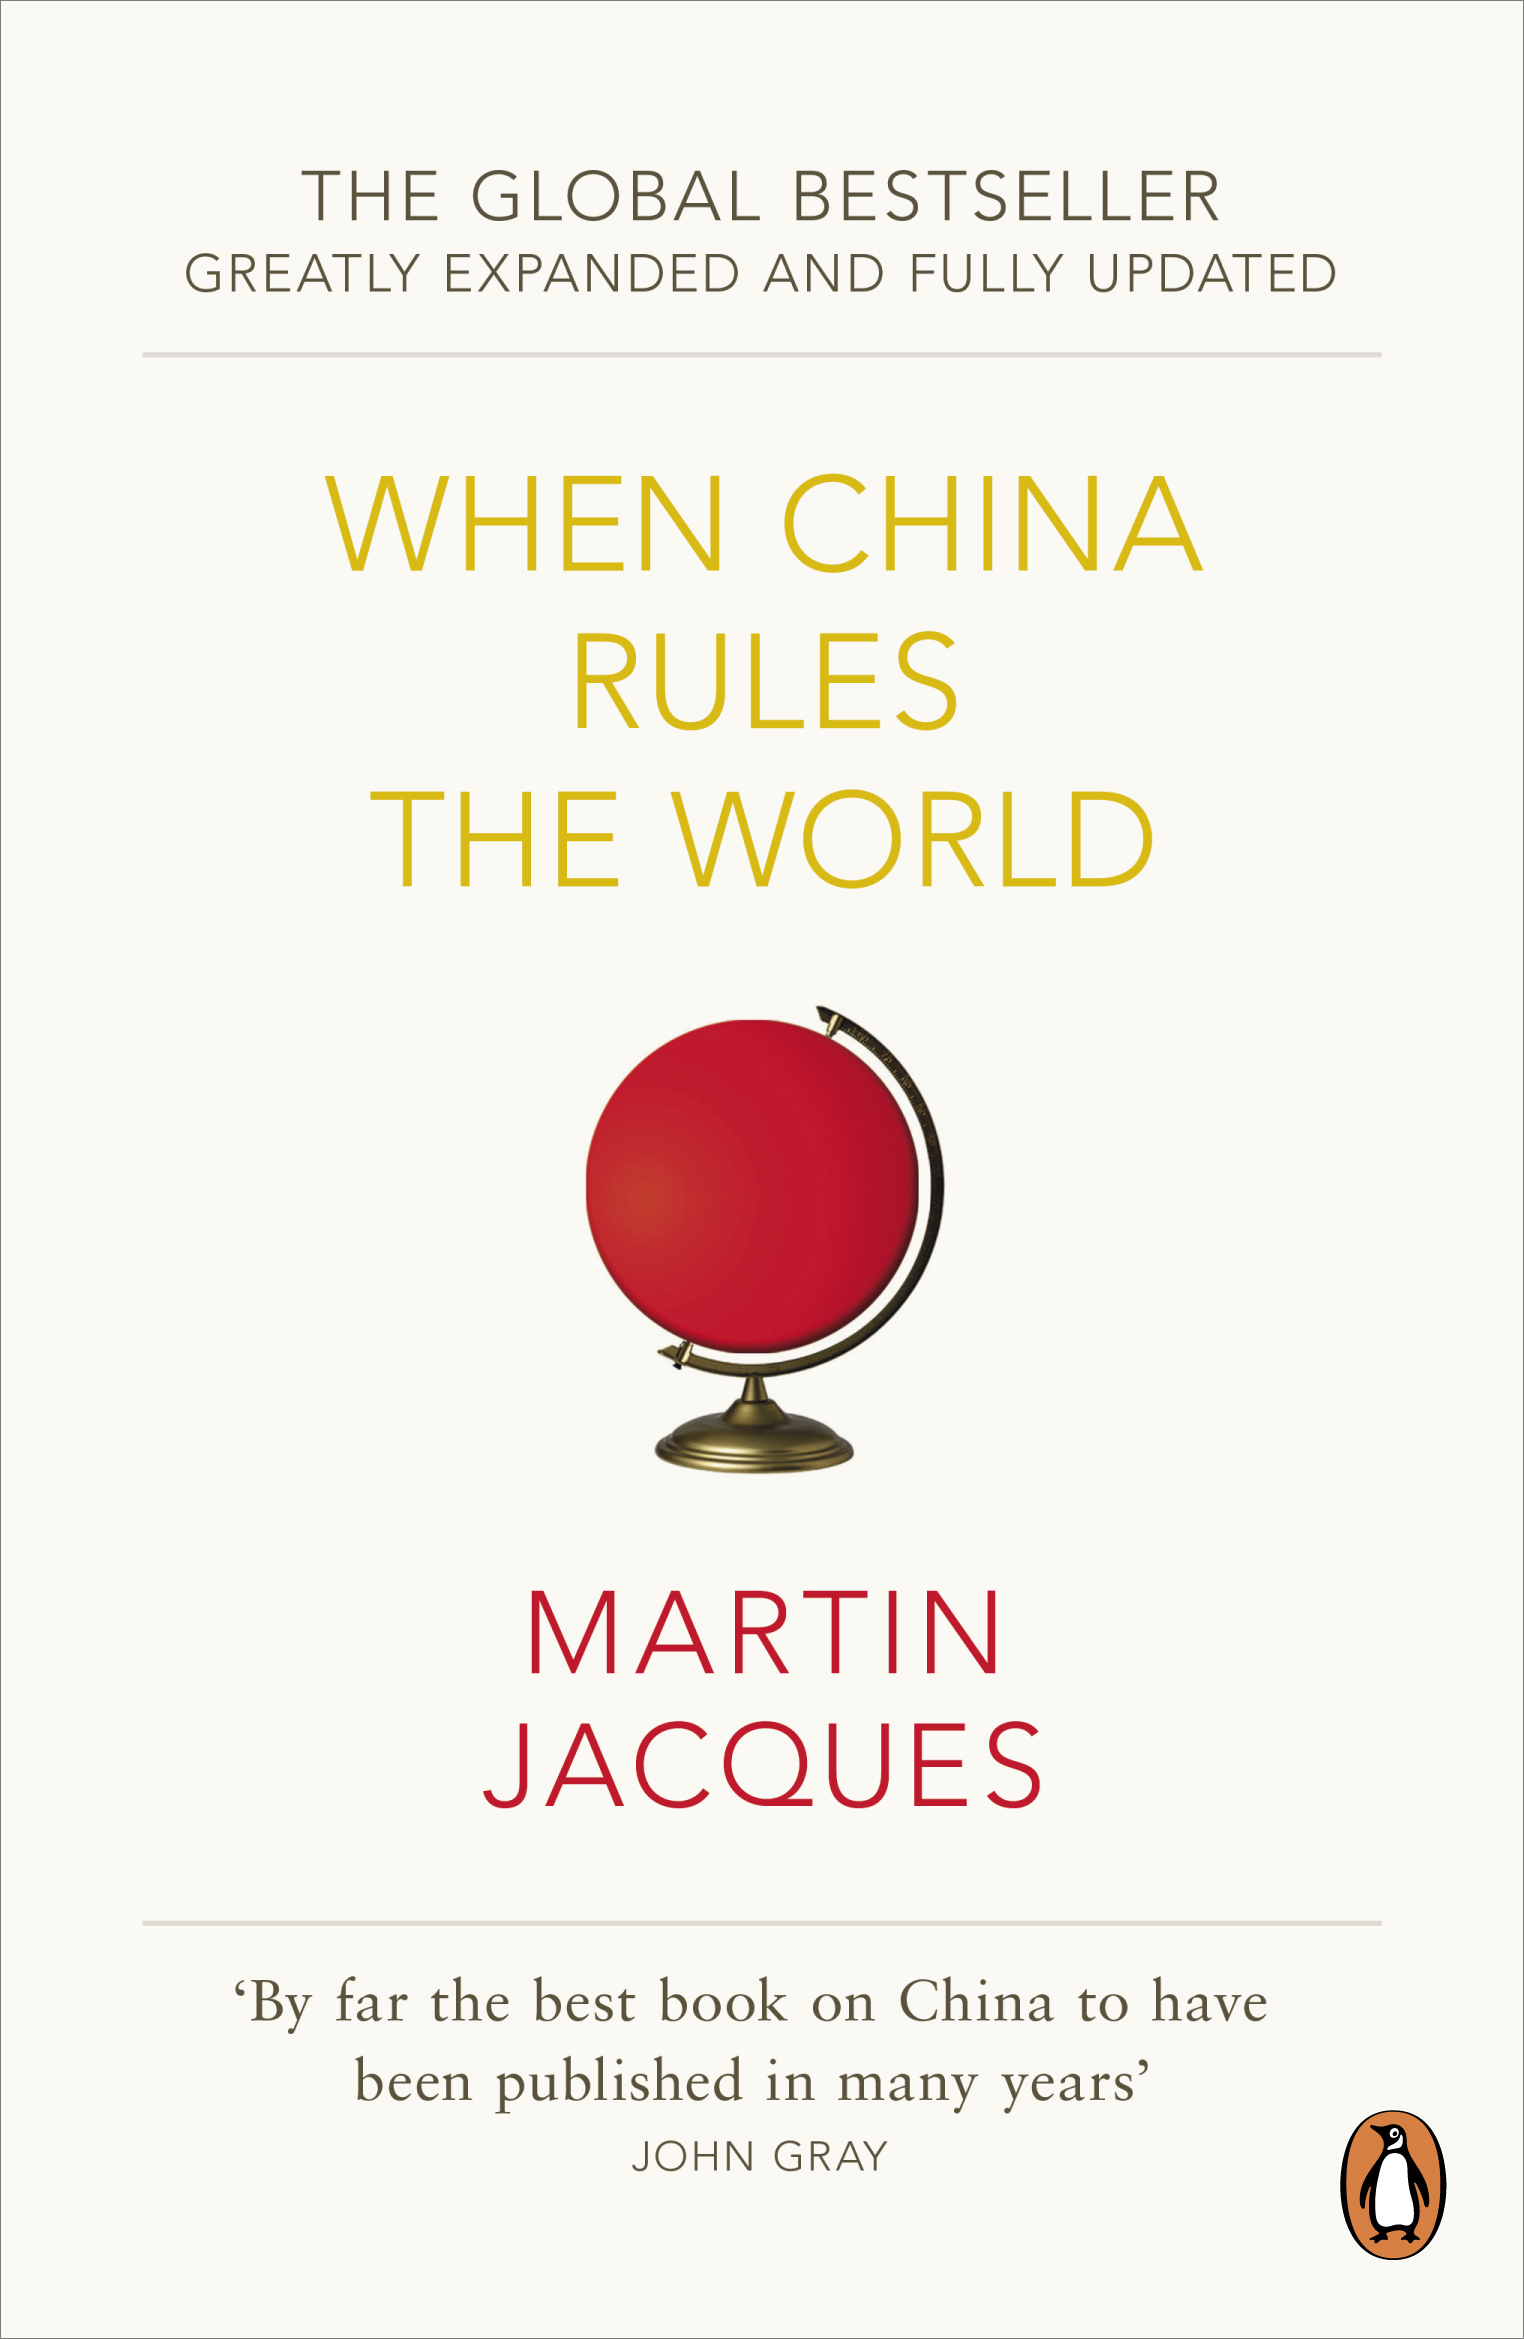 the rise of western power when china The rise of china, if it continues, may be the most important trend in the world for the next century when historians one hundred years hence write about our time, they may well conclude that the most significant development was the emergence of a vigorous market economy-and army-in the most.